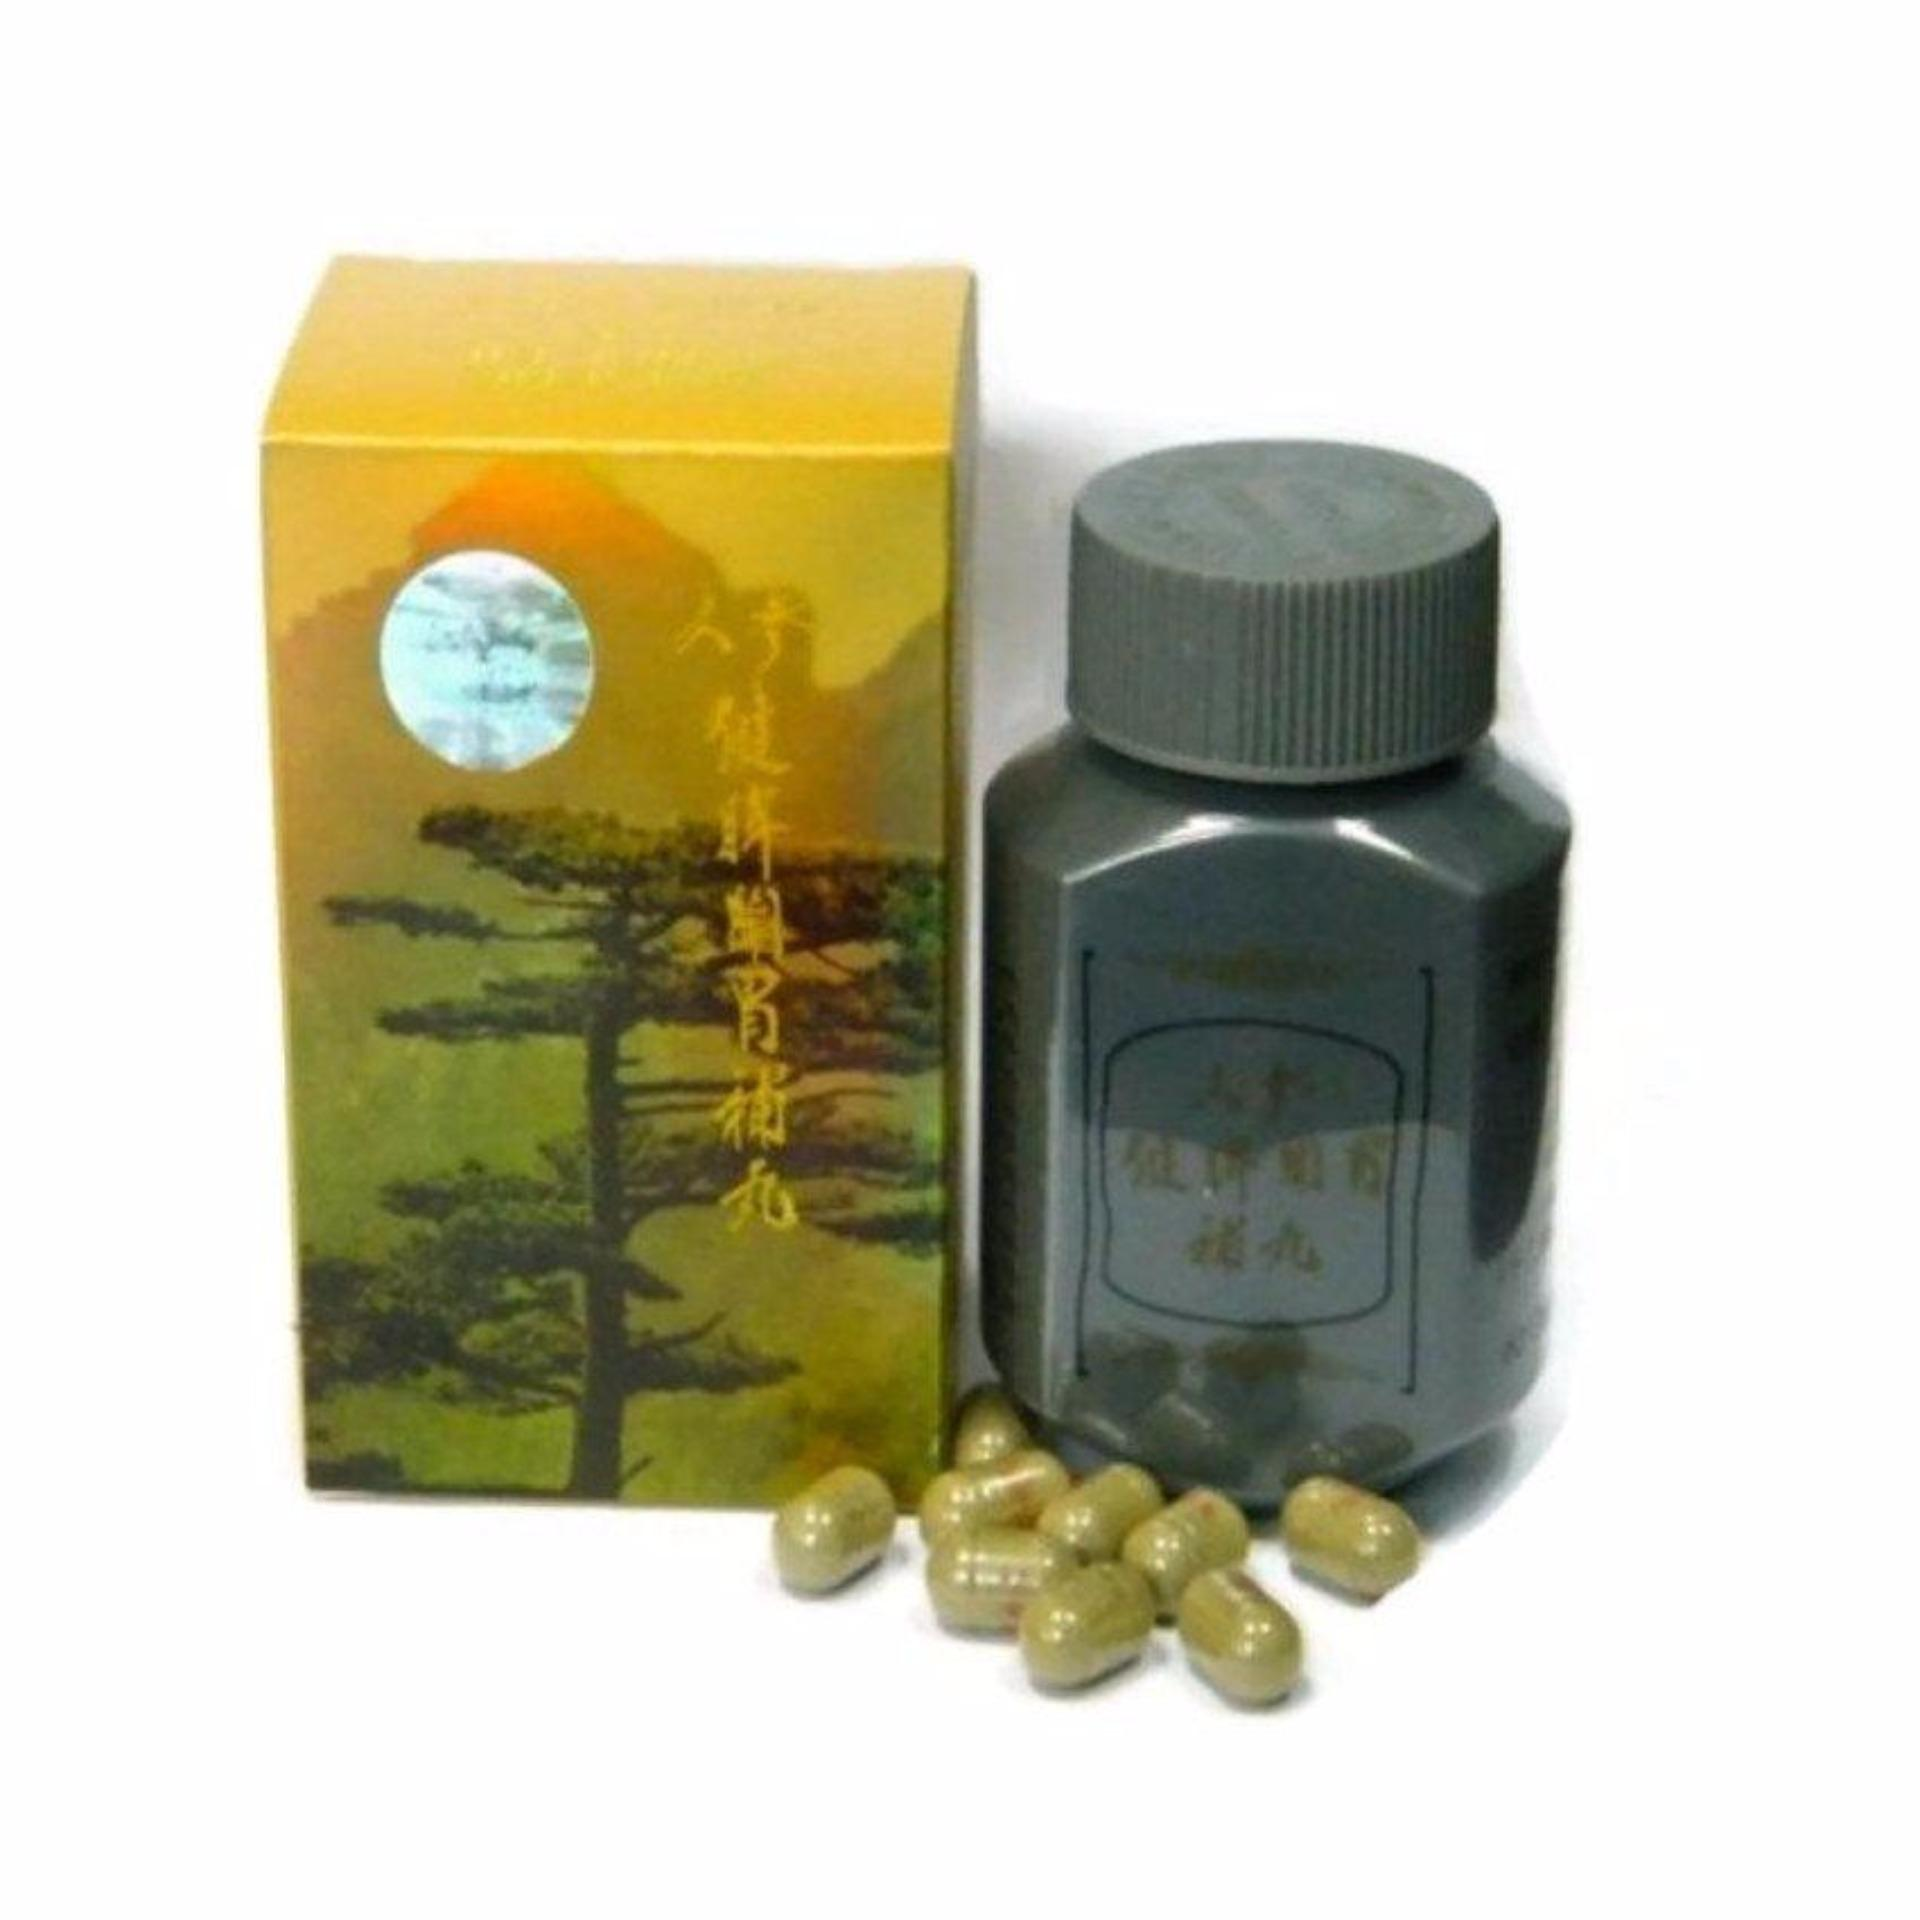 Flash Sale Ginseng Kianpi Pil GOLD Original Berhologram Emas - Pil Penggemuk Badan Herbal - 60 Kapsul